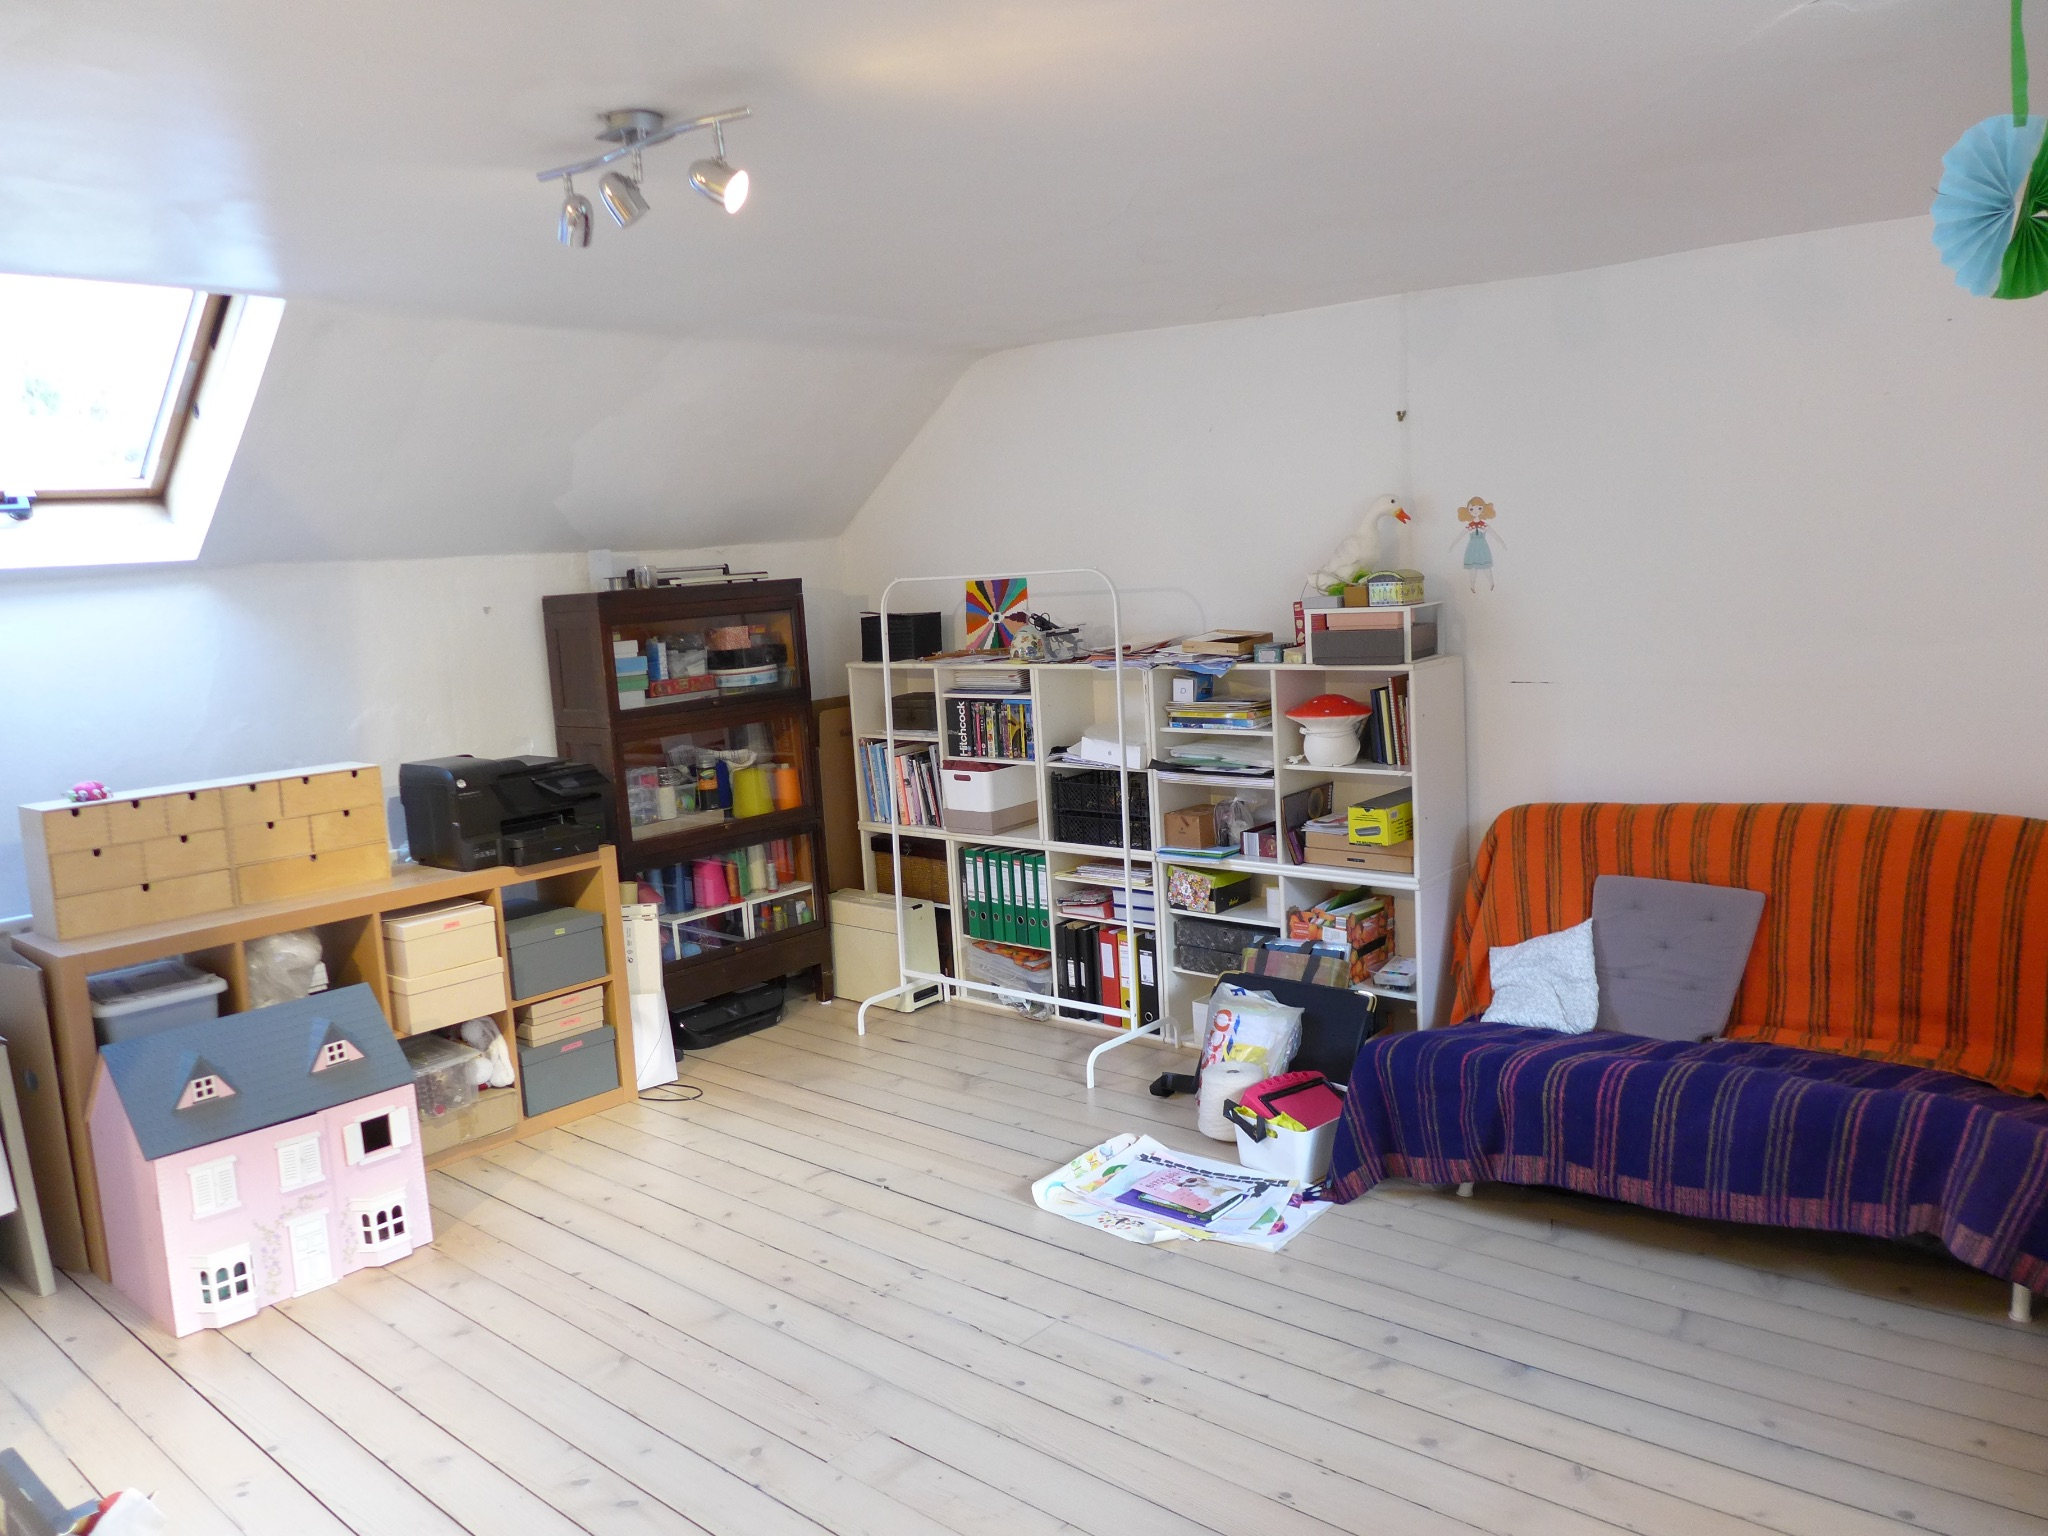 4 bedroom end terraced house For Sale in Calderdale - Photograph 21.